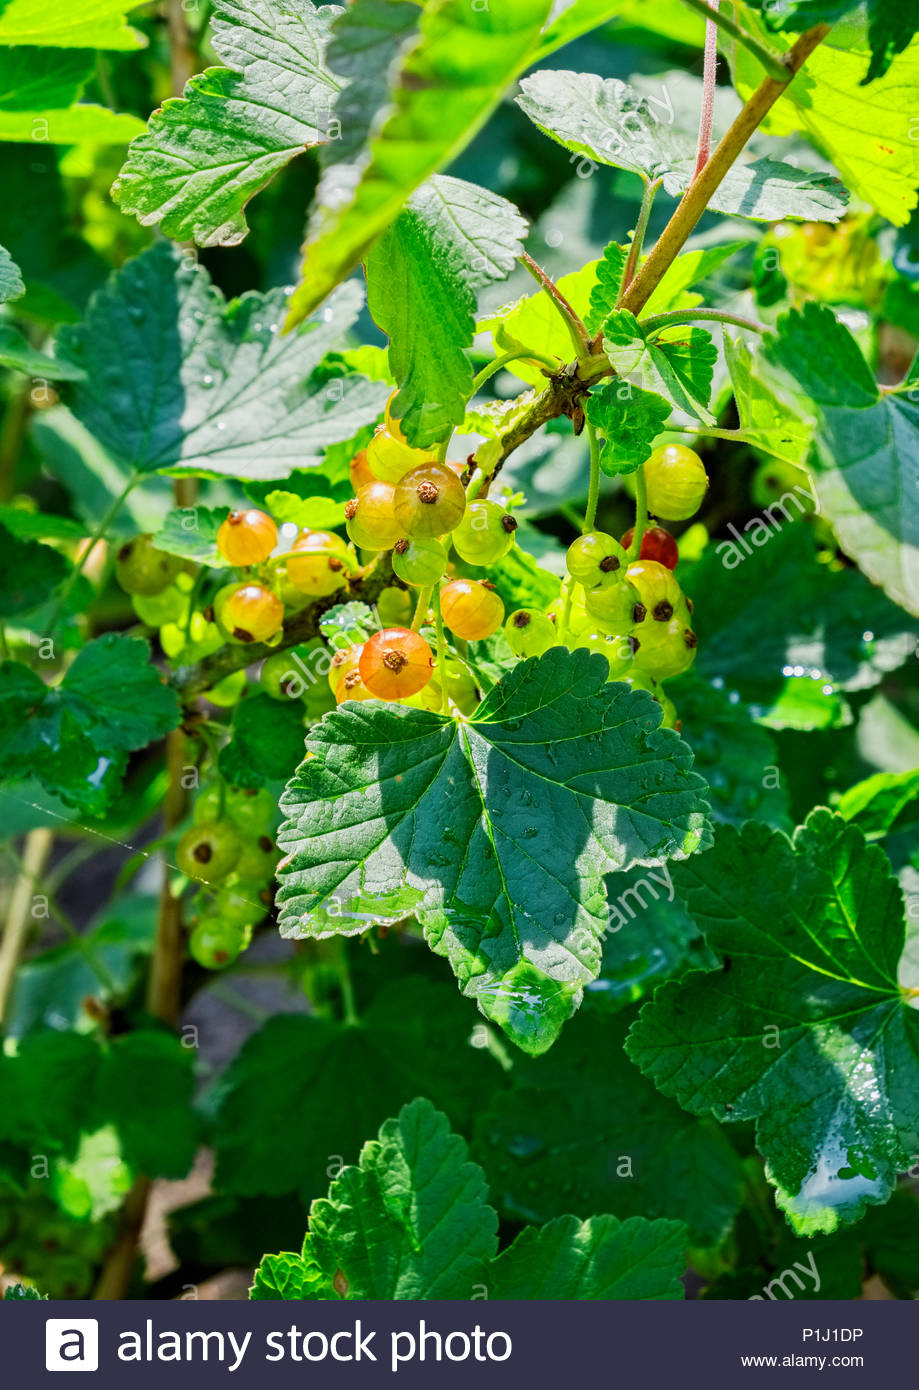 Johannisbeeren, AKA red currants, gooseberries, Ribes rubrum, are just beginning to ripen in early June. Stock Photo